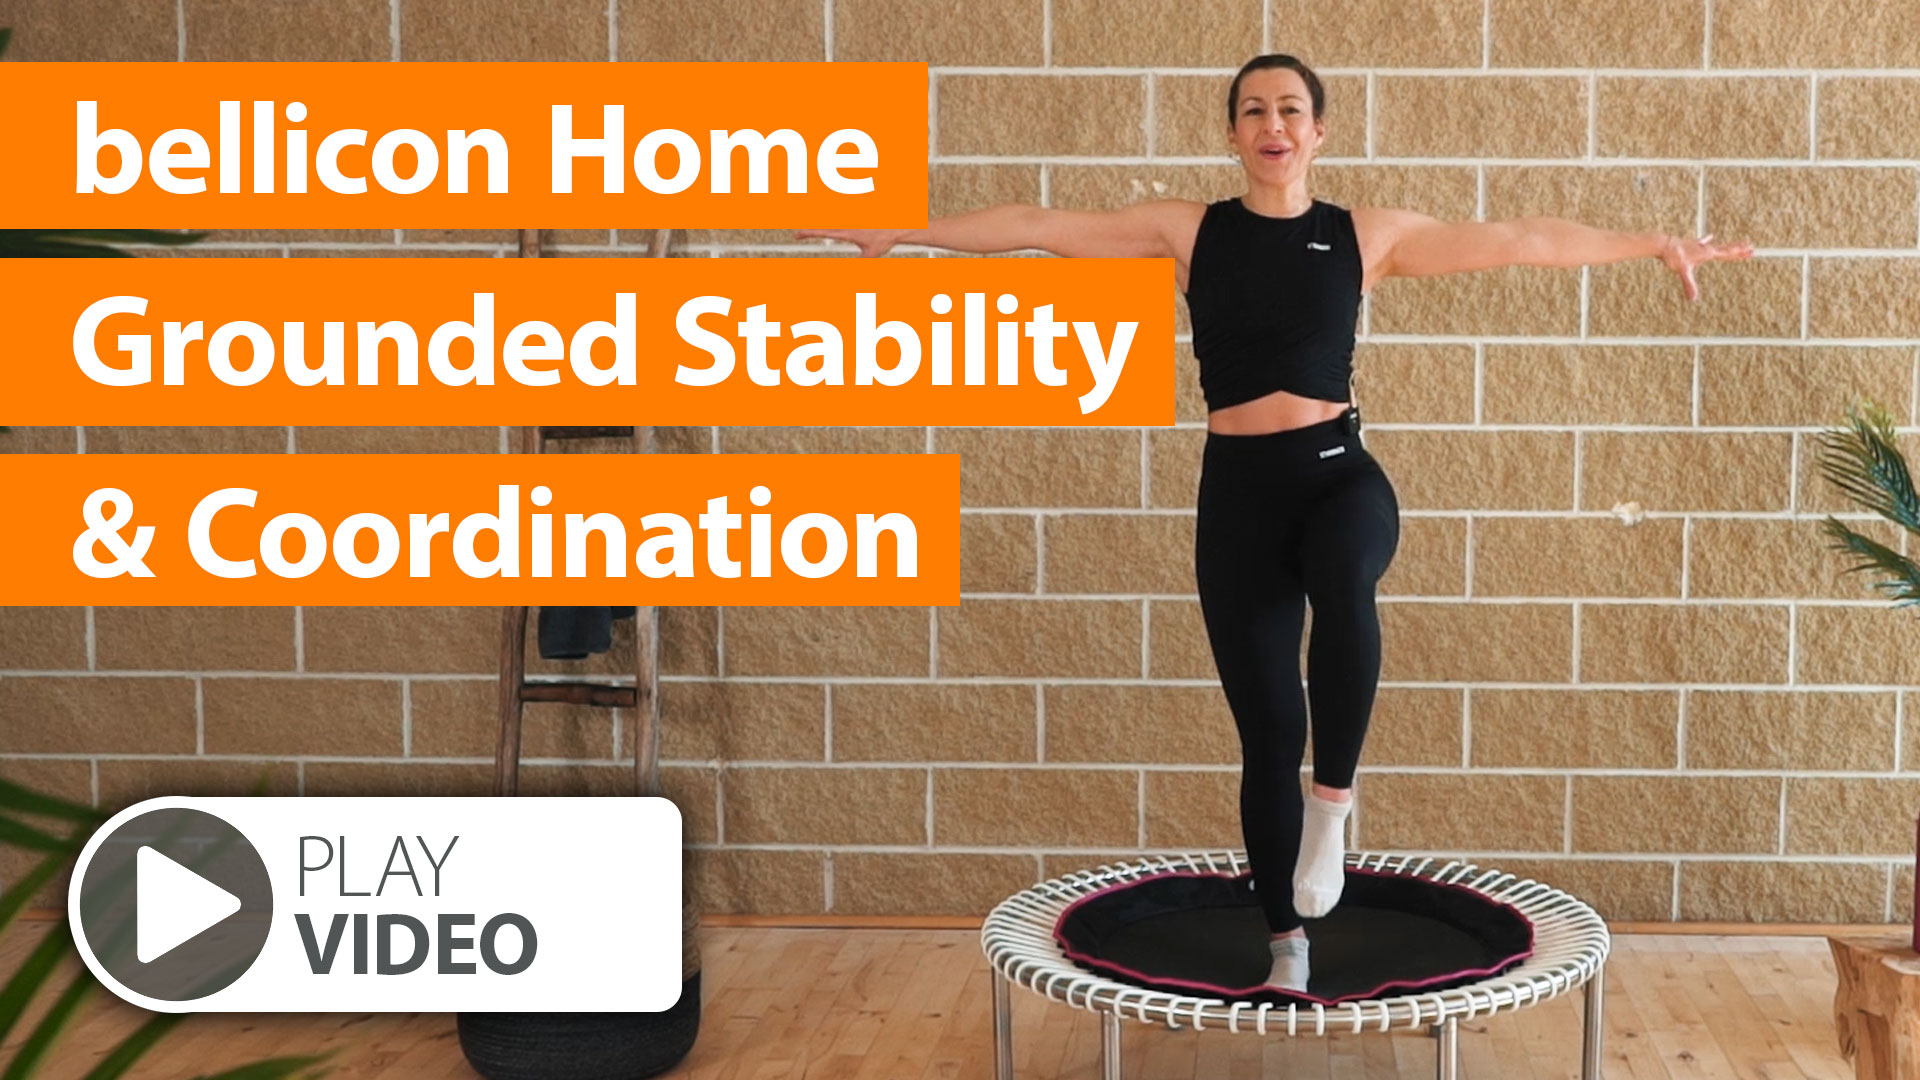 bellicon Home groundes stability & coordination